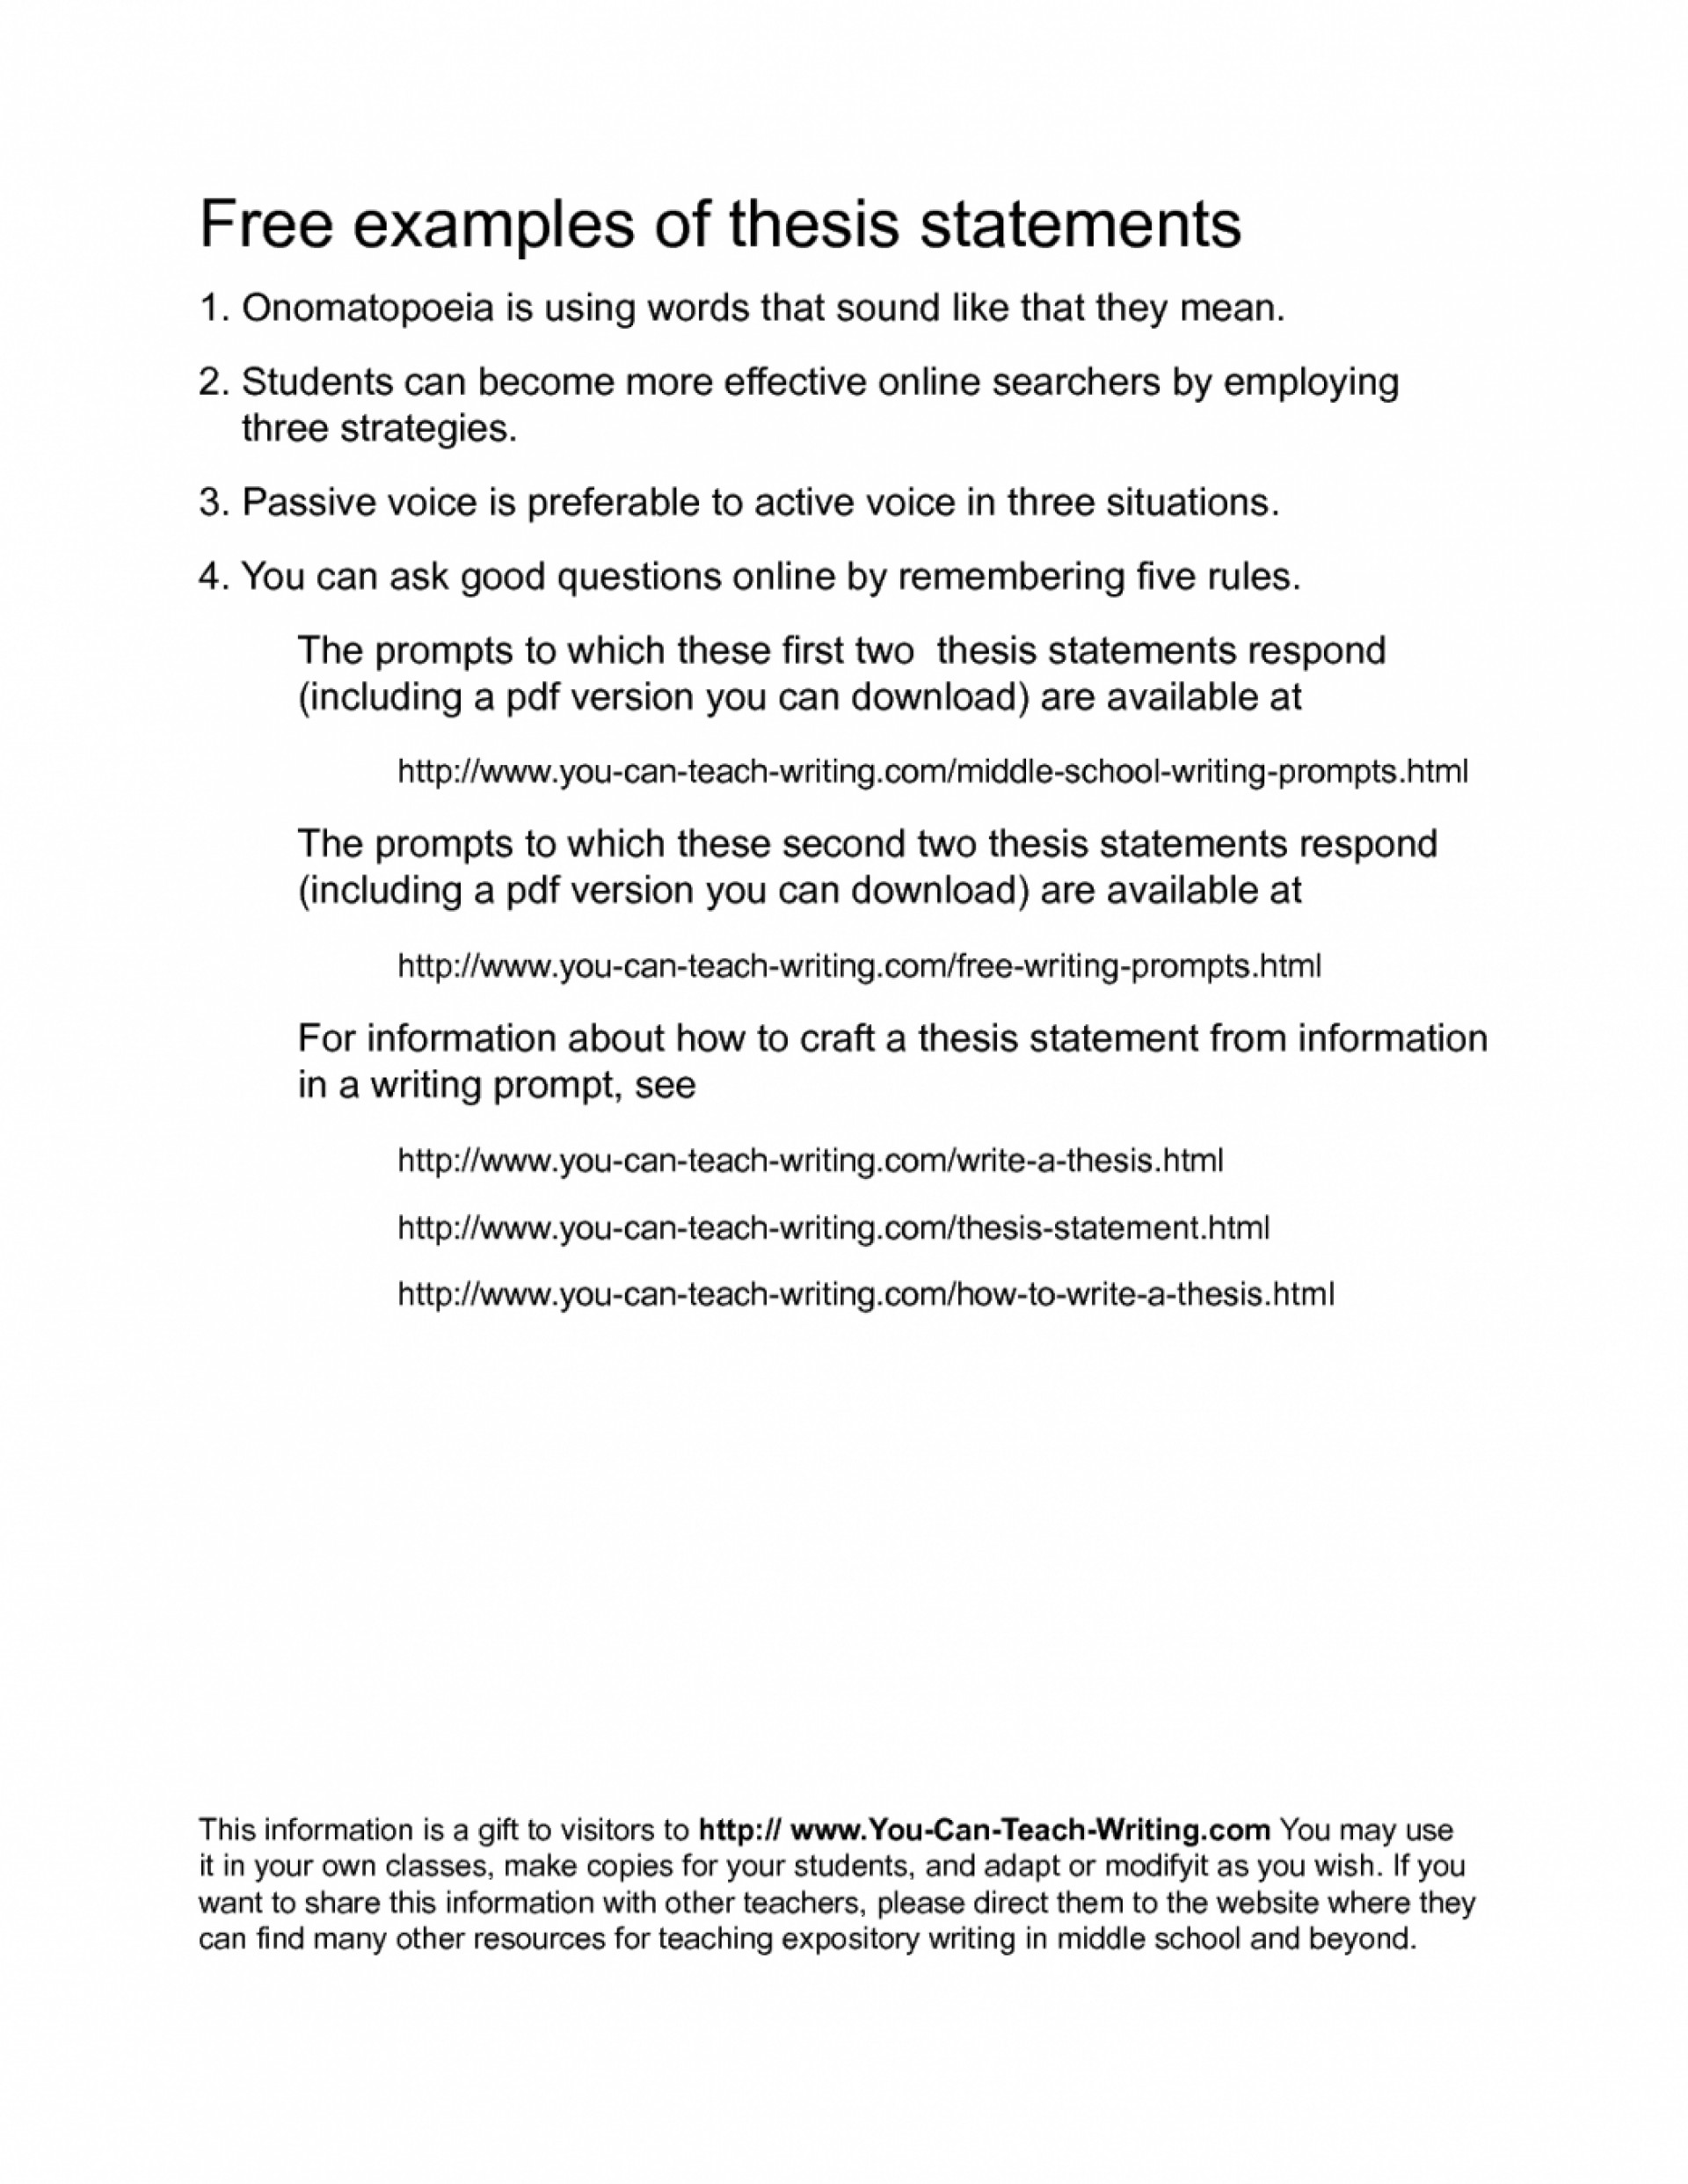 007 Persuasiveay Thesis Good Topics For Middle School About Purpose Of Statement Template Wwe Speech Uniforms Issues Education Rules Uniform Argumentative High 1048x1356 Exceptional Persuasive Essay Ideas Outline 1920